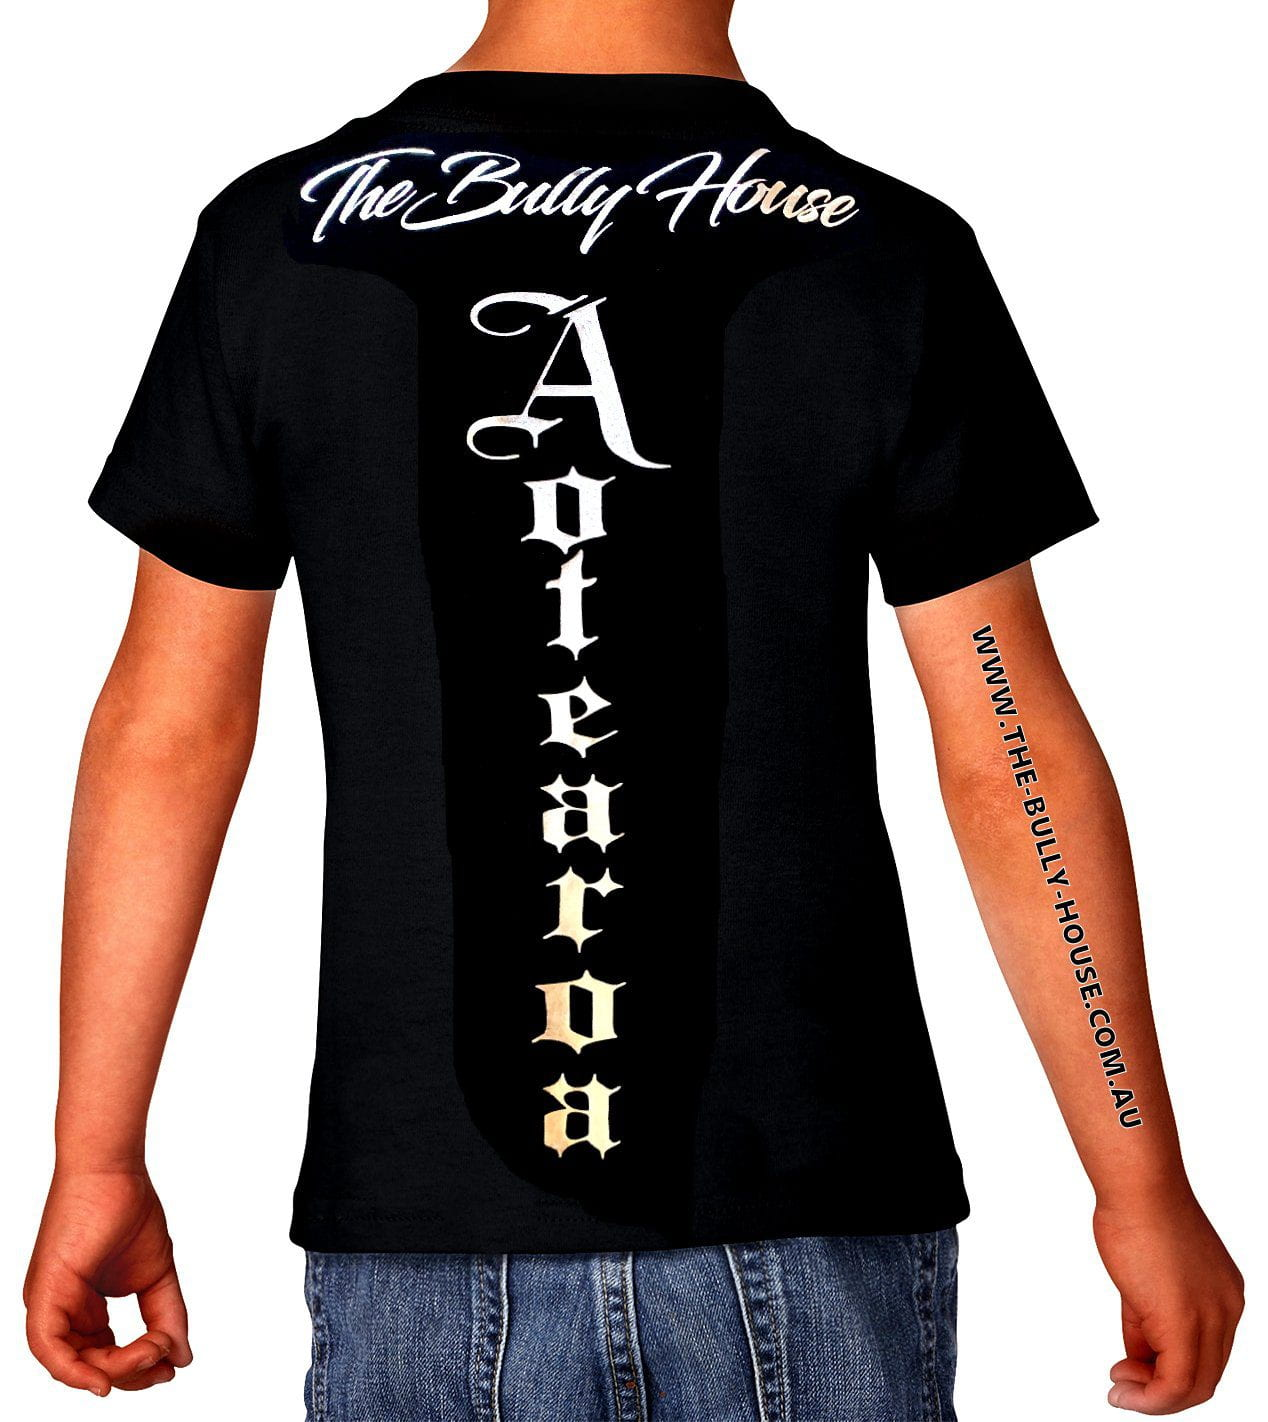 The Bully House - AOTEAROA - TATTOO T-Shirt - KIDS / SILVER CHROME HOT FOIL Print